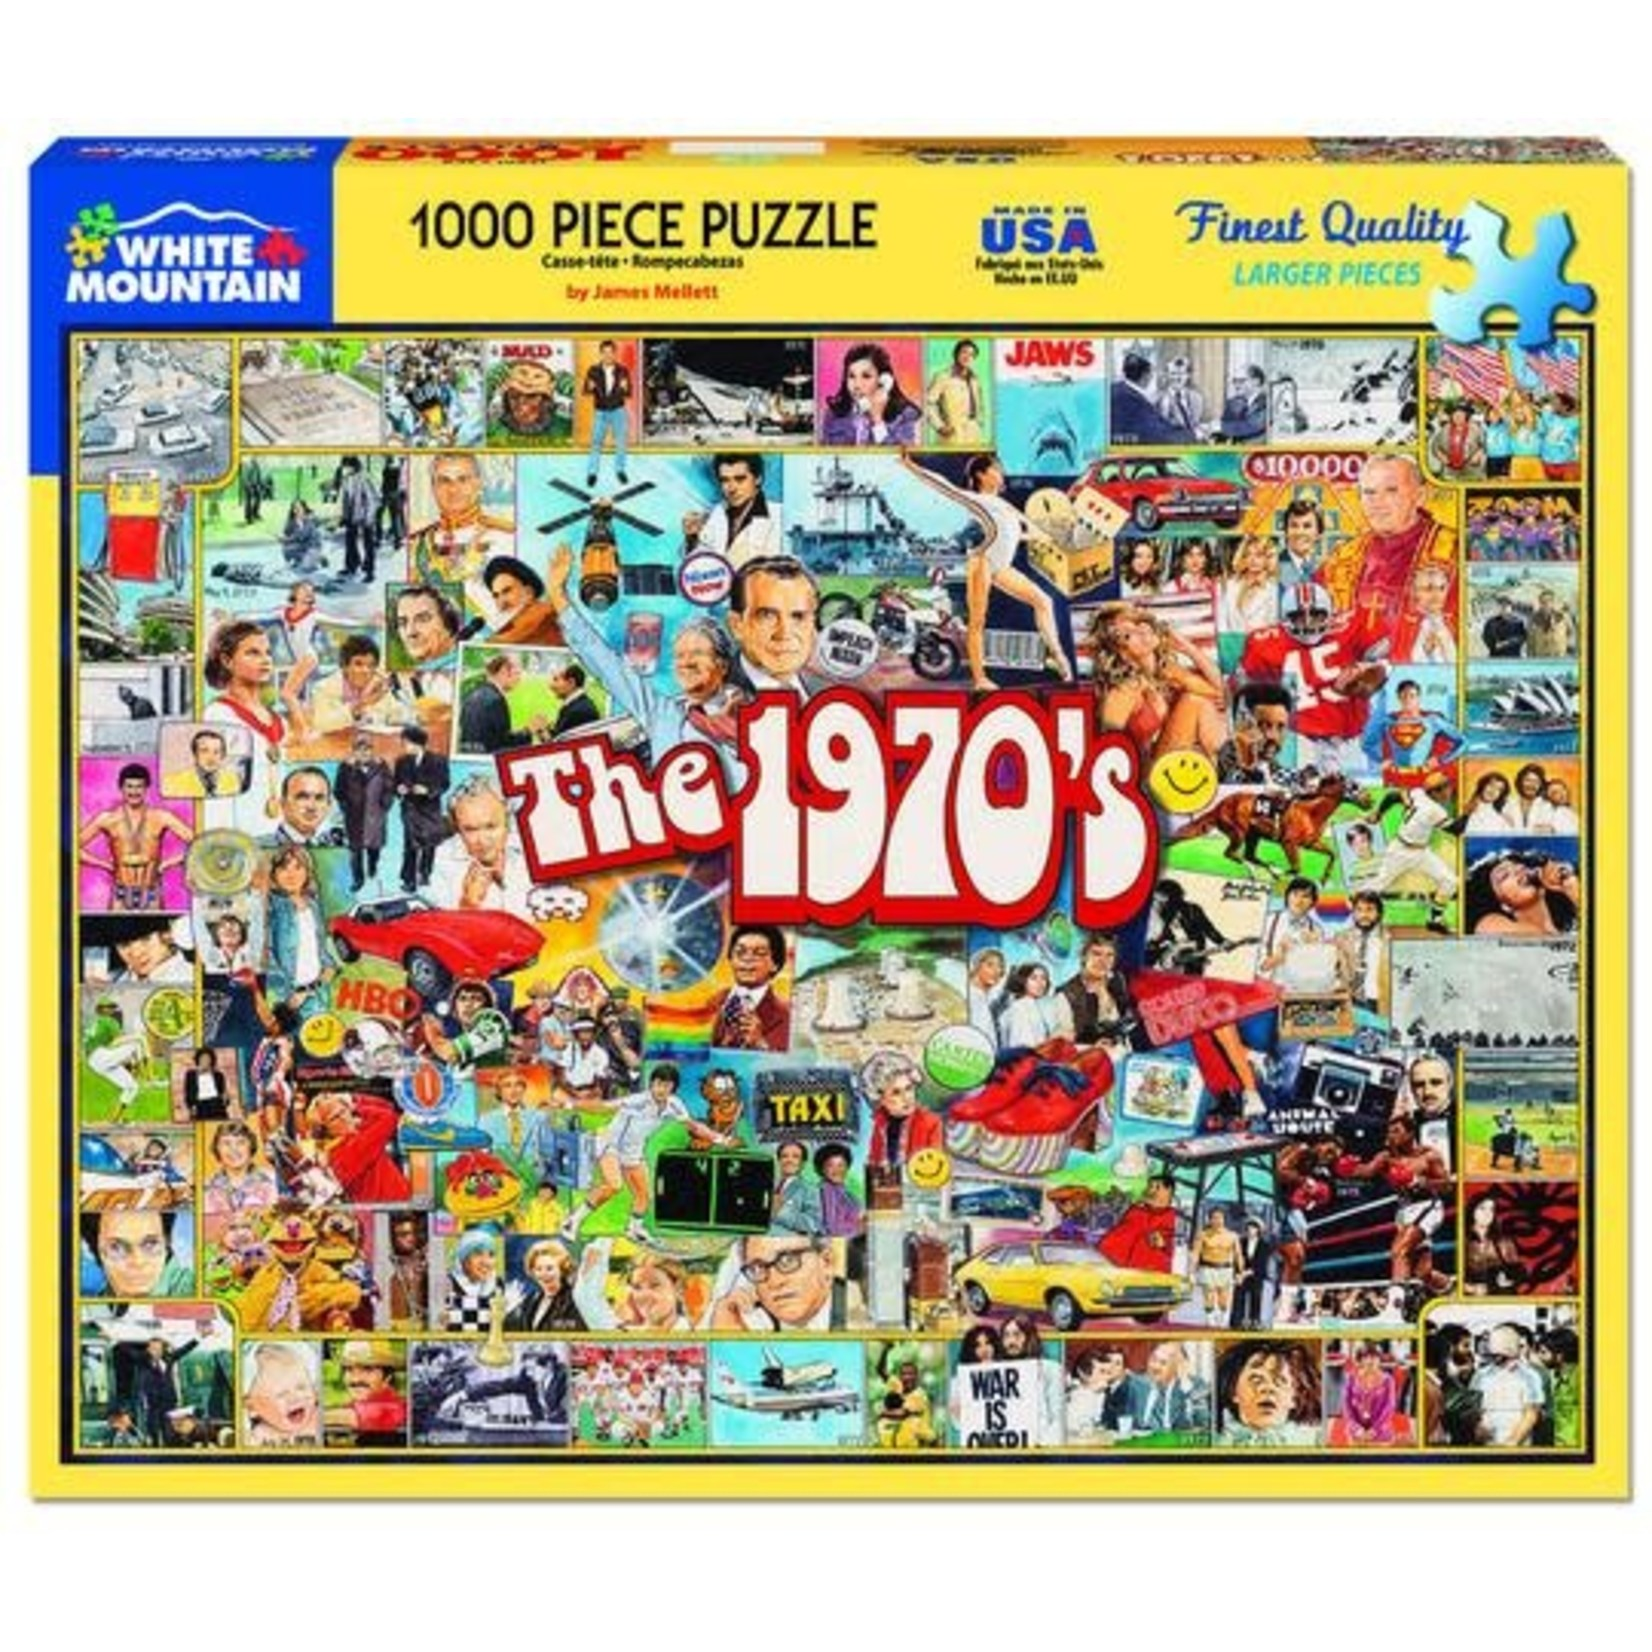 THE 1970'S PUZZLE